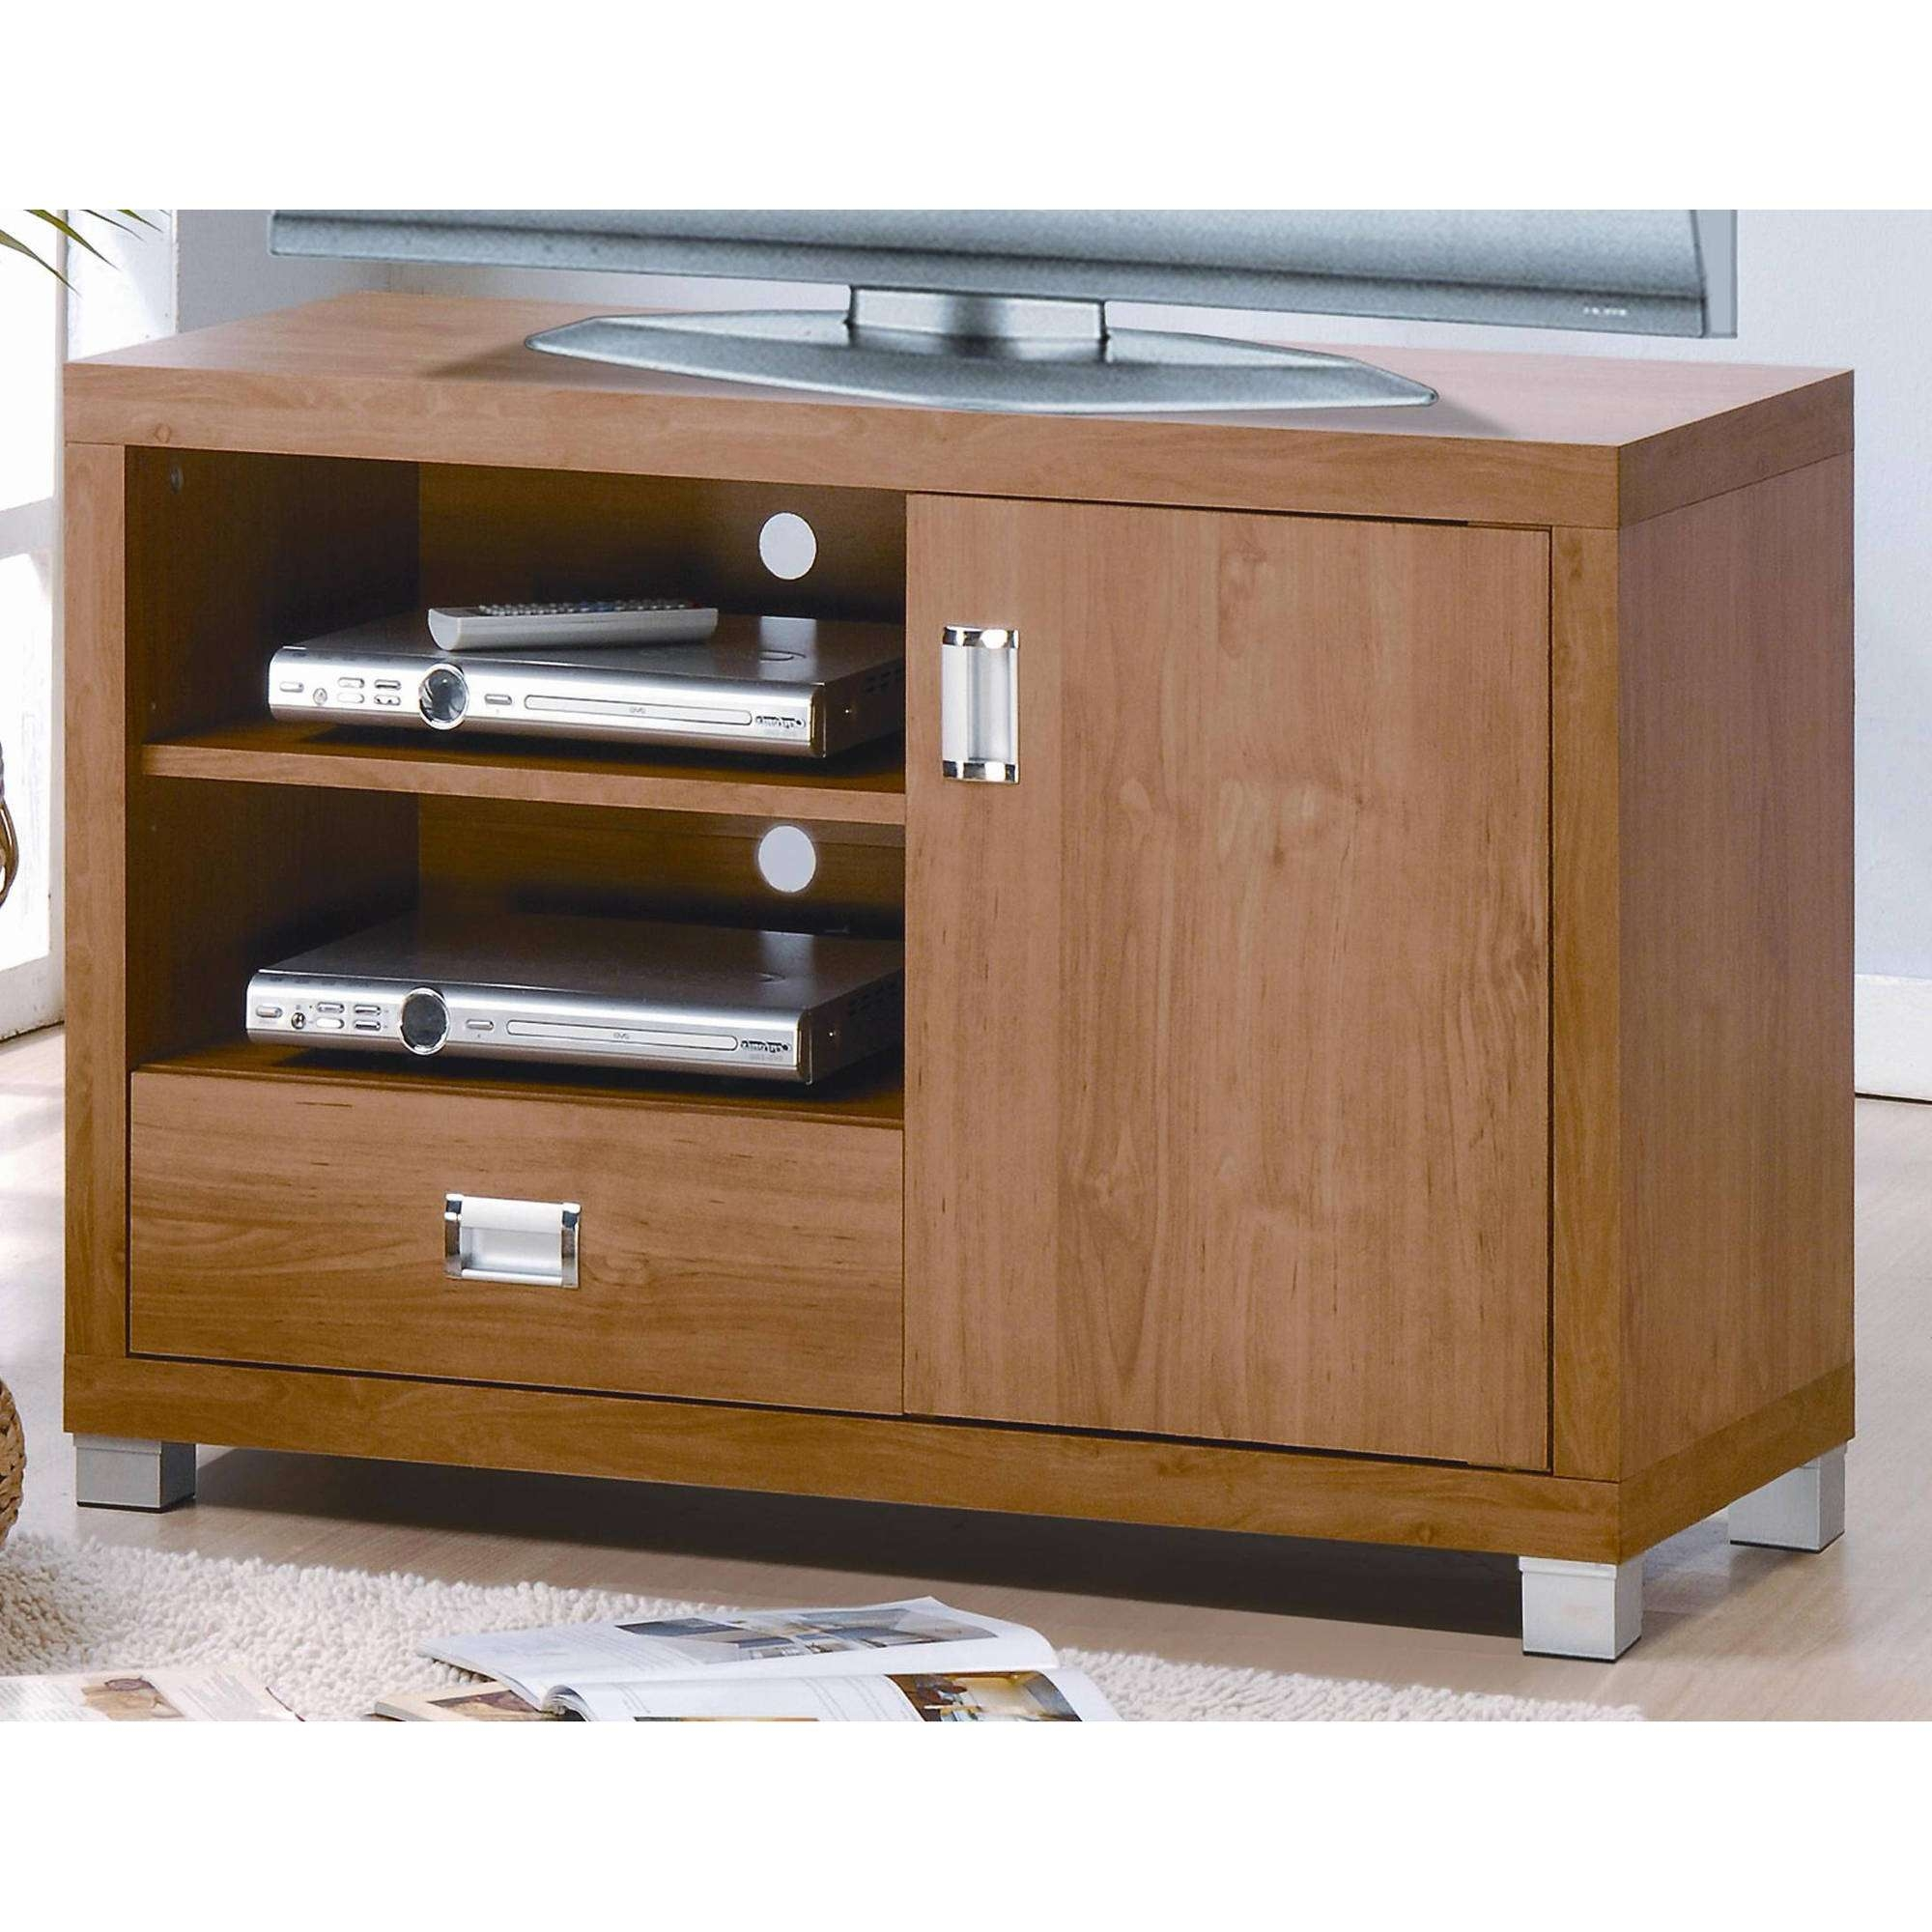 Techni Mobili Tv Cabinet, Maple – Walmart With Regard To Maple Tv Stands (View 9 of 15)